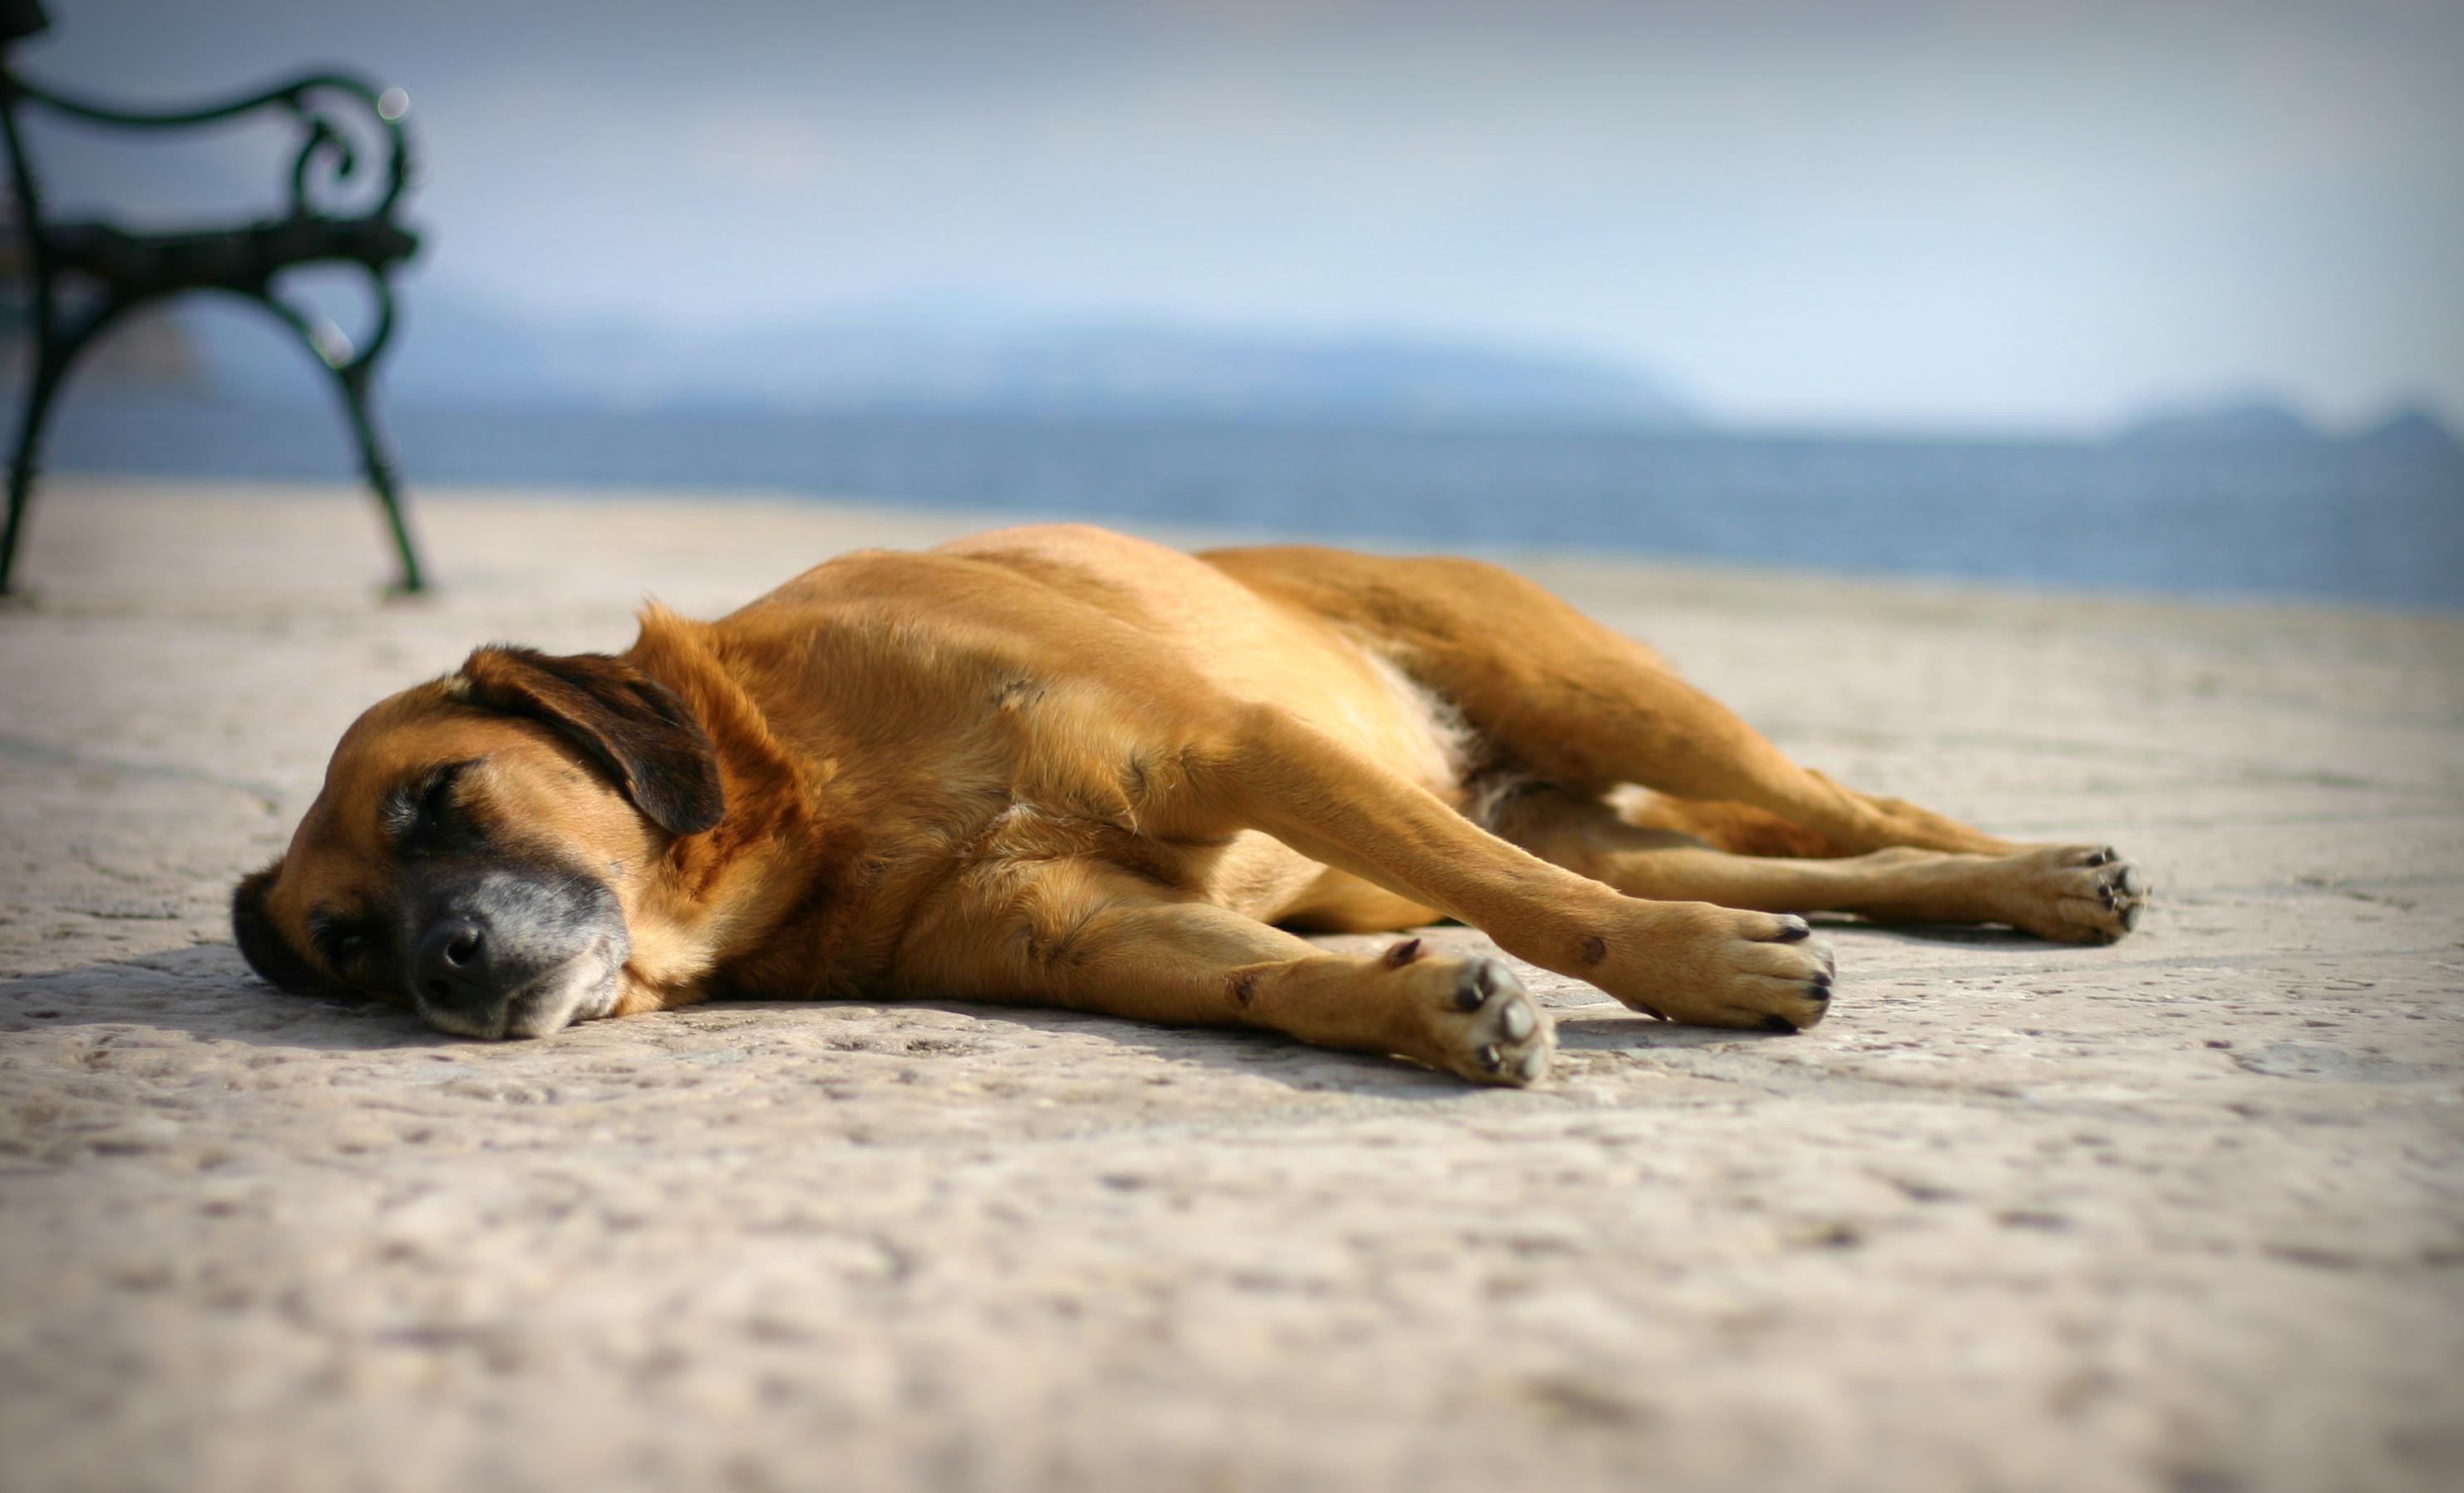 129927 download wallpaper Animals, Dog, Sleep, Dream, Sand, To Lie Down, Lie screensavers and pictures for free